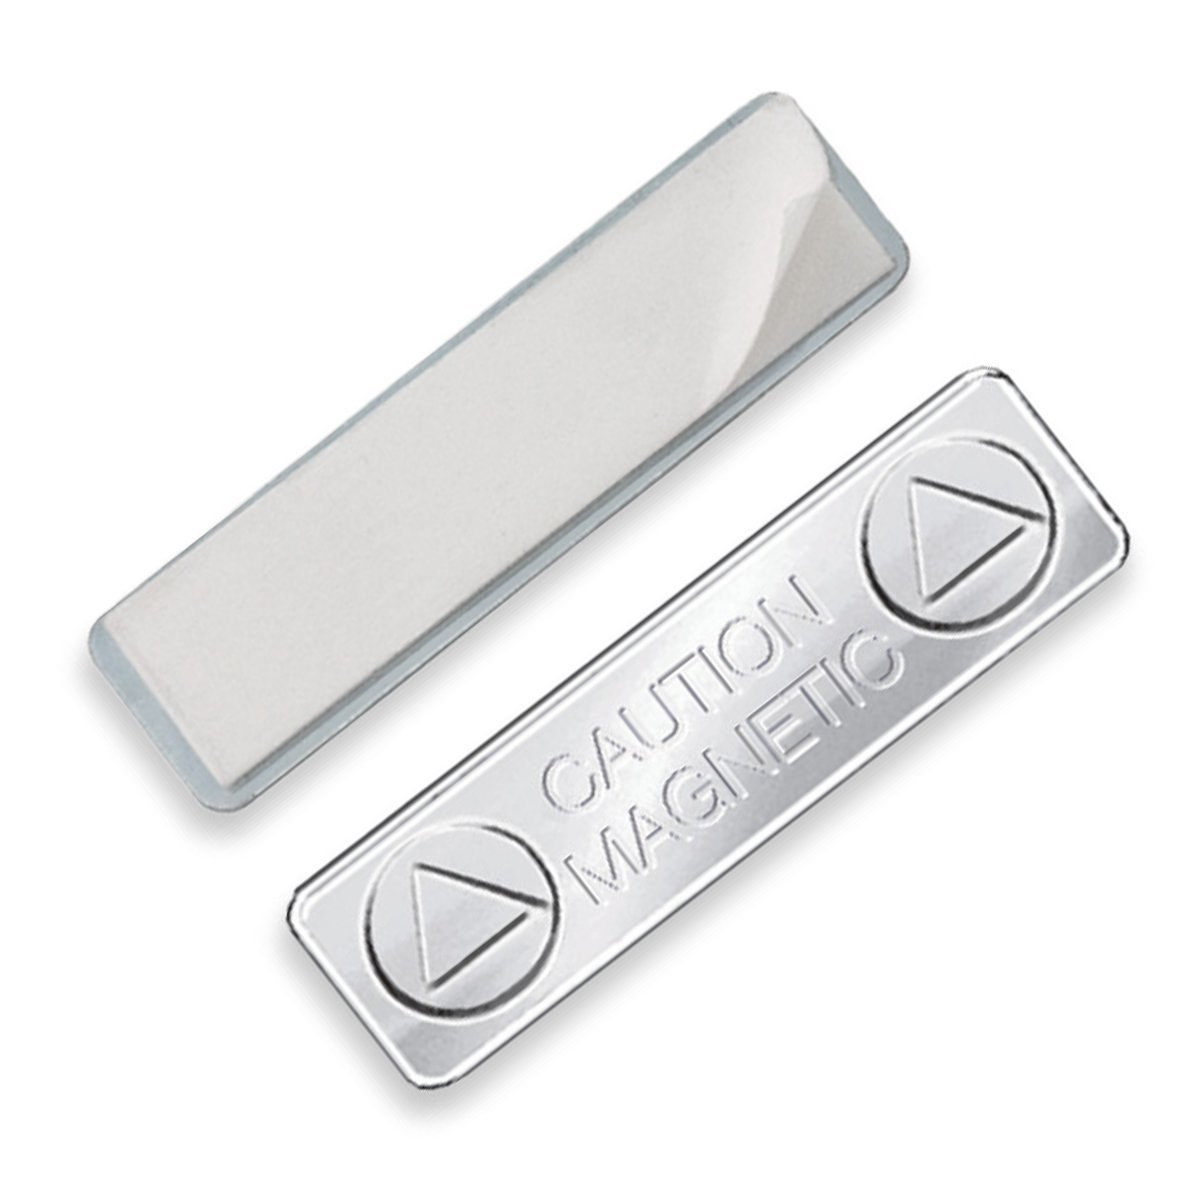 225eb5ccef4 50 Bulk Super Strong Name Tag Magnets - Magnetic ID Badge Holders w Sticky  Back